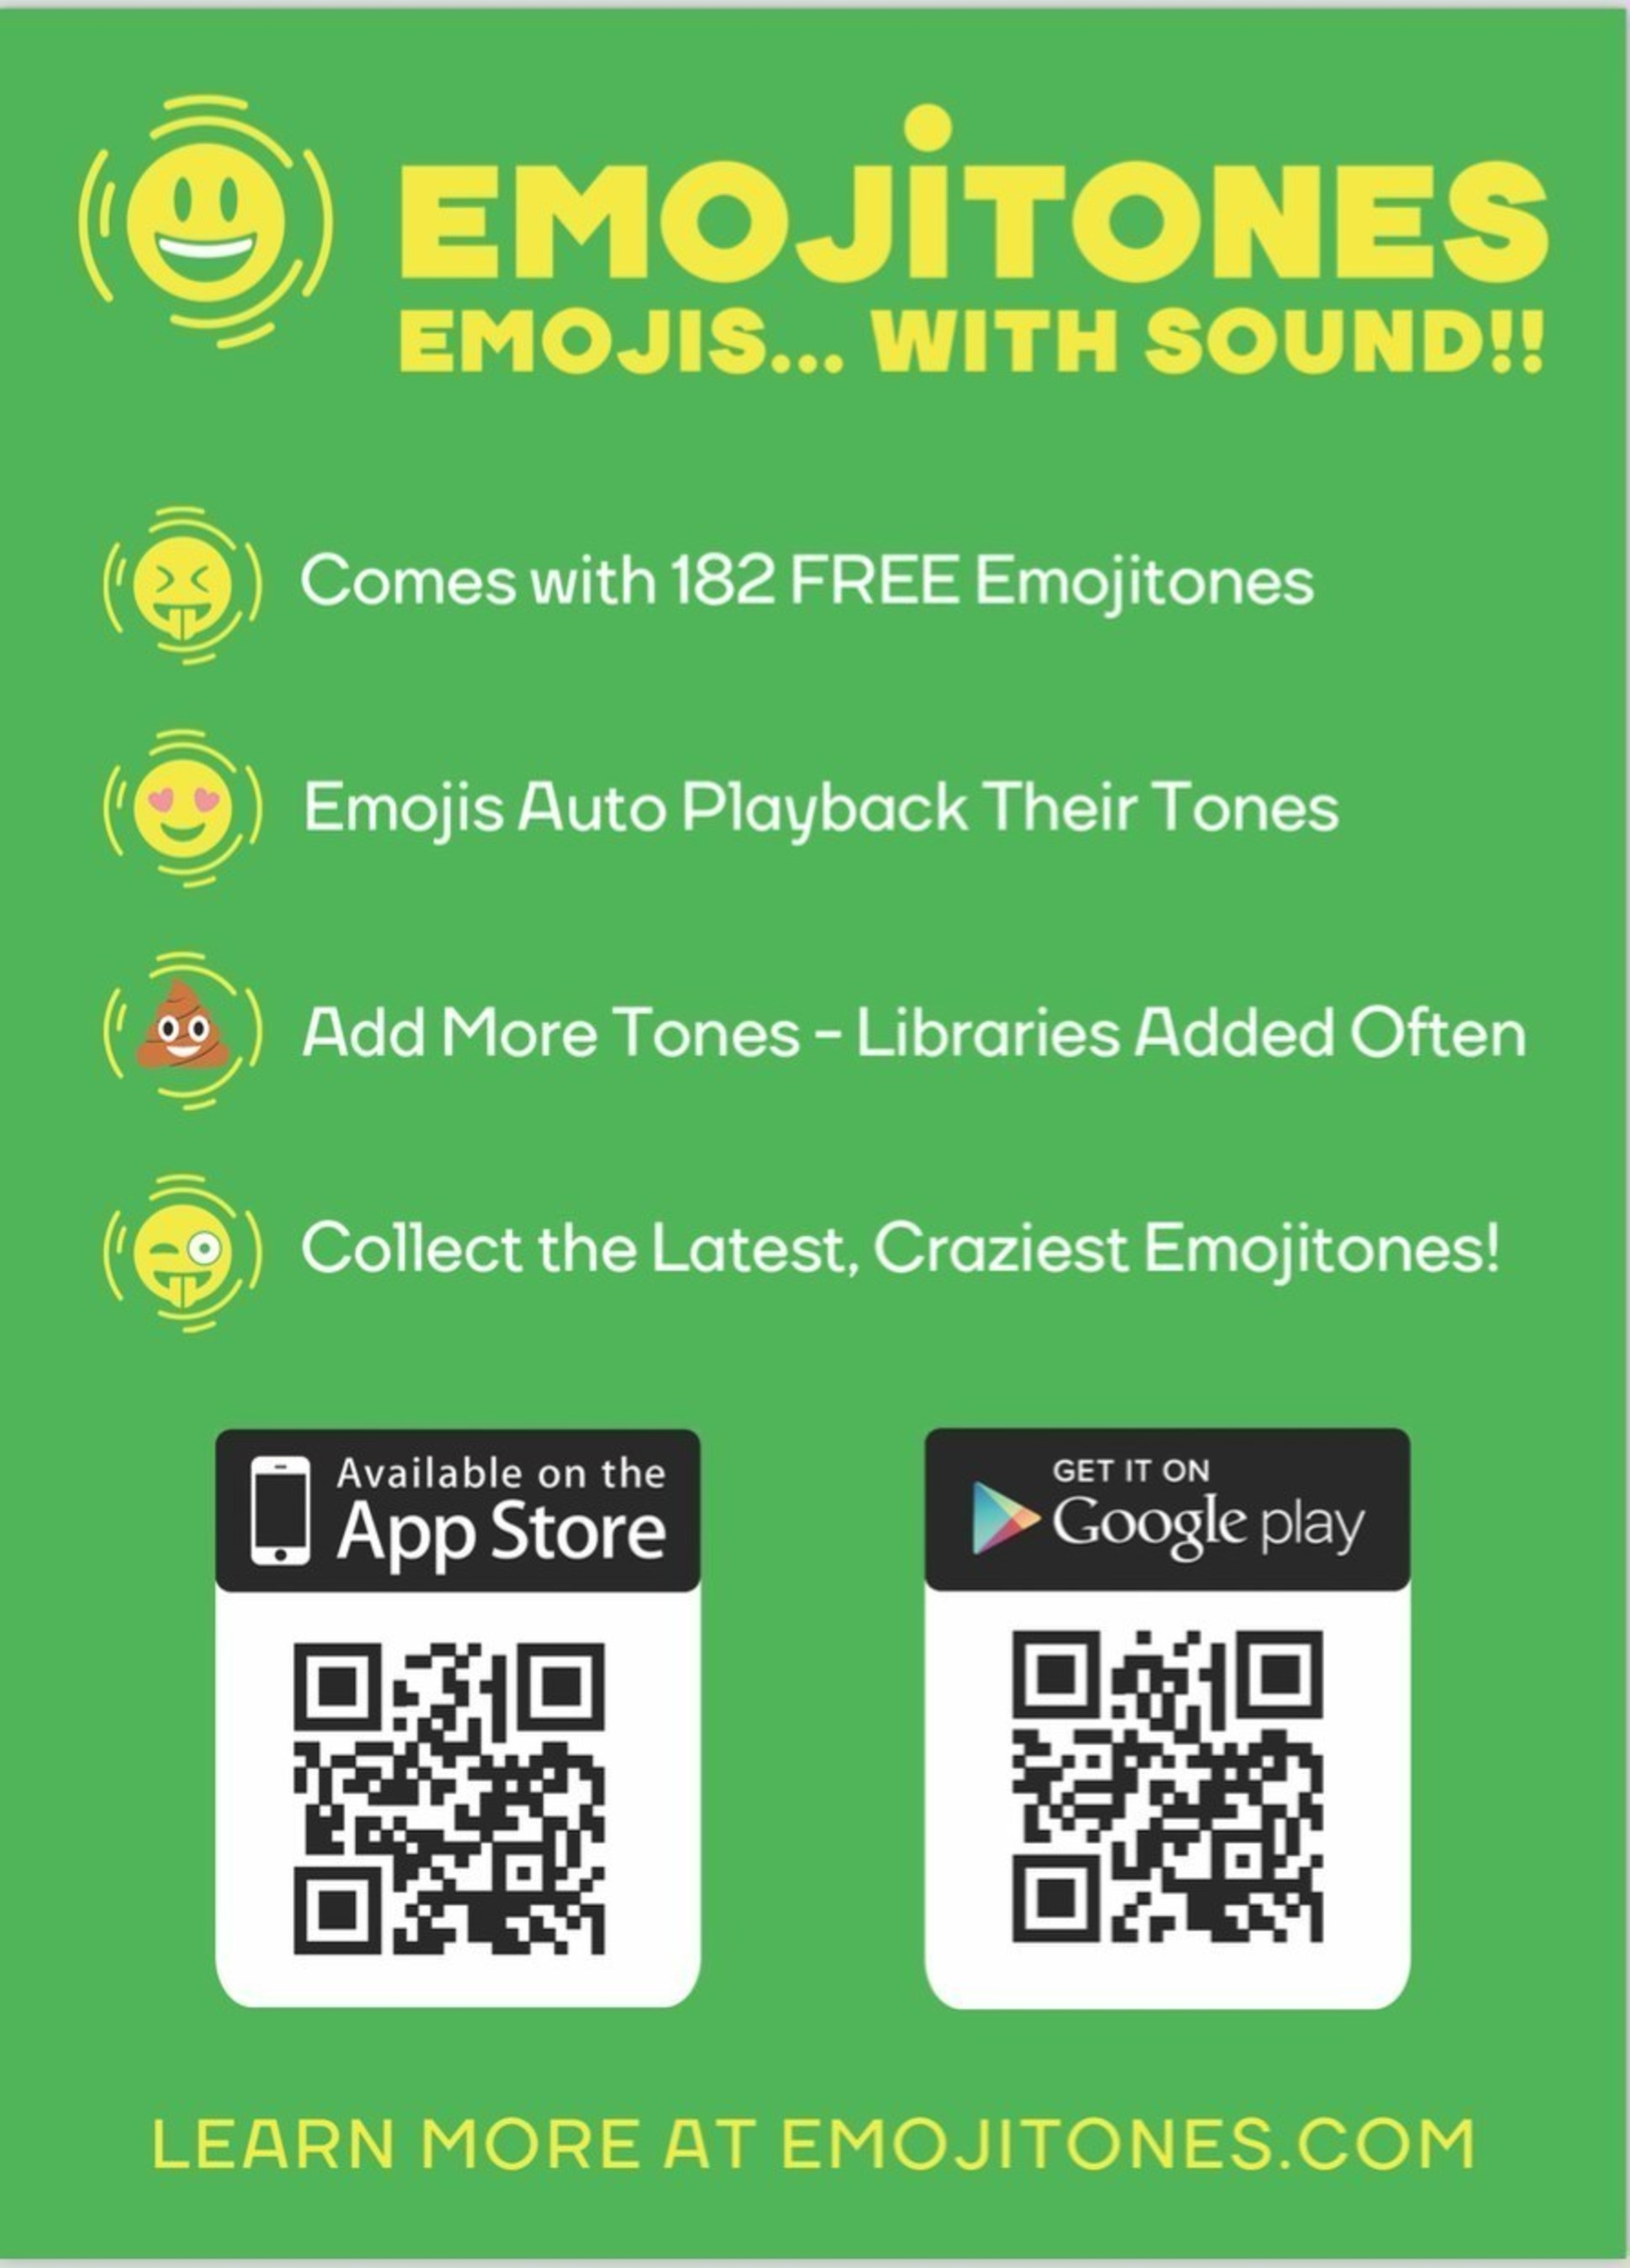 Join The Revolution! 'Irish start up Emojitones (http://www.emojitones.com) launches iOS and Android App